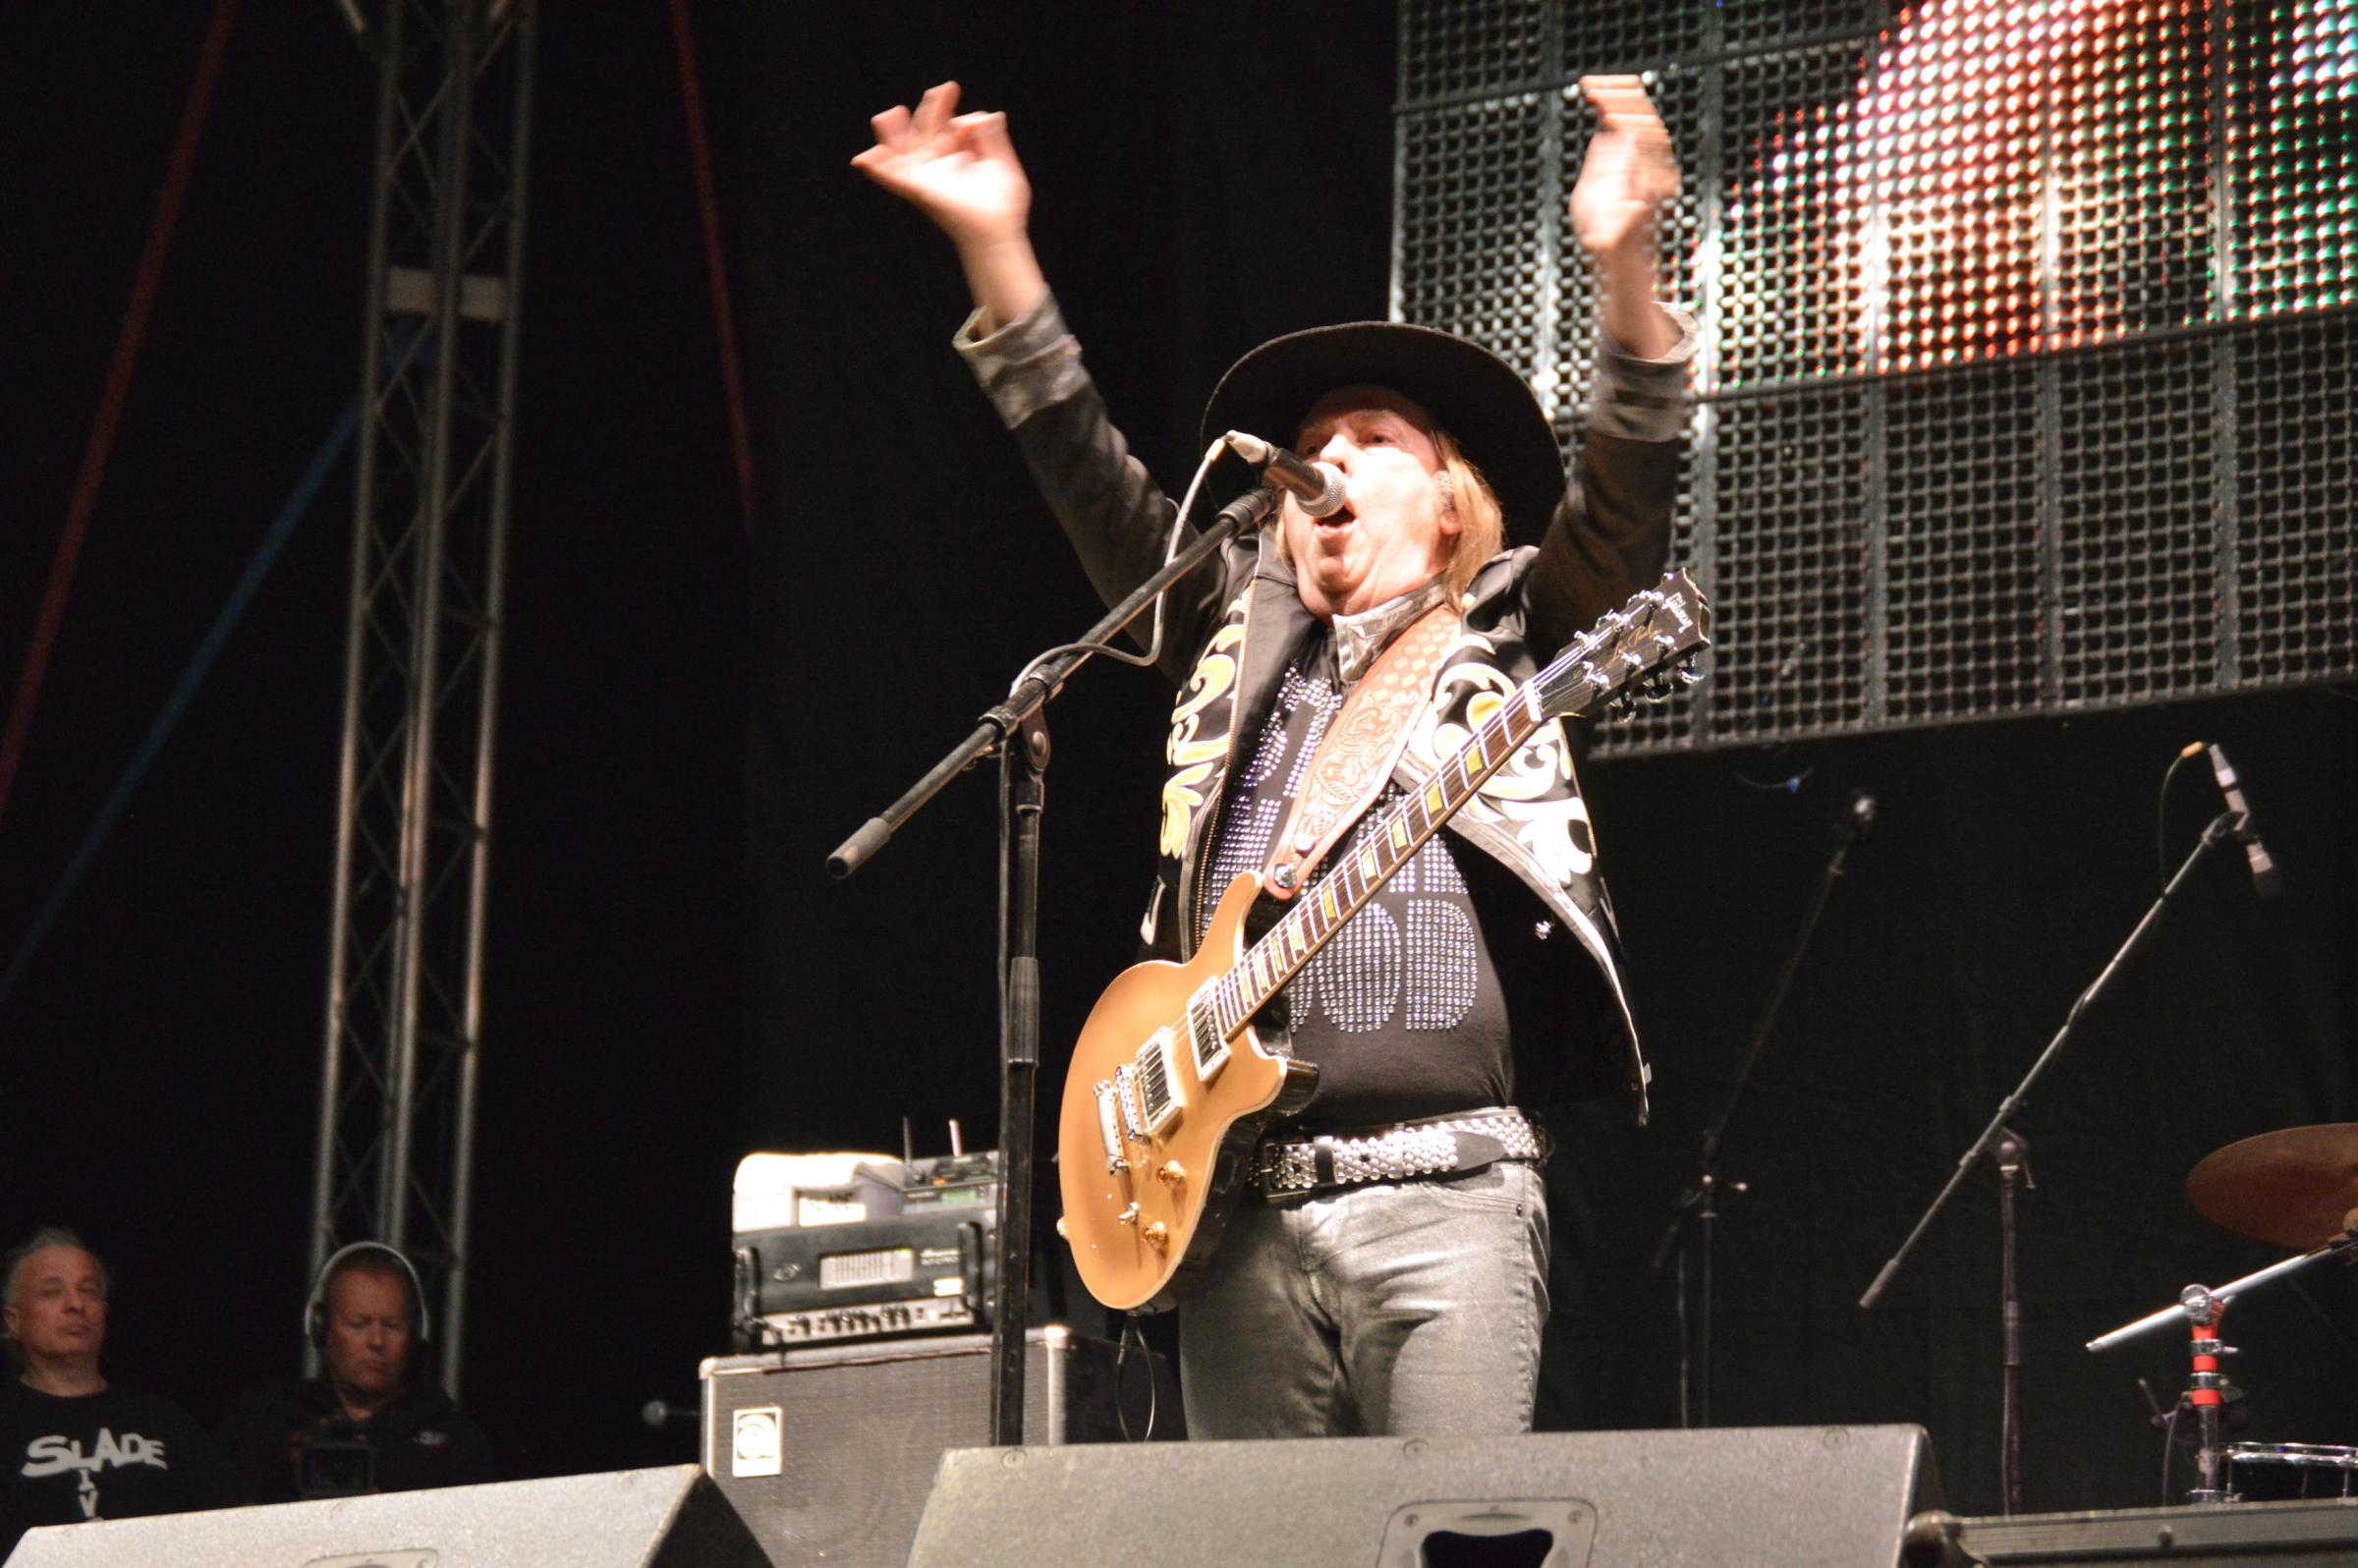 Dave Hill from Slade onstage at Upton 2013